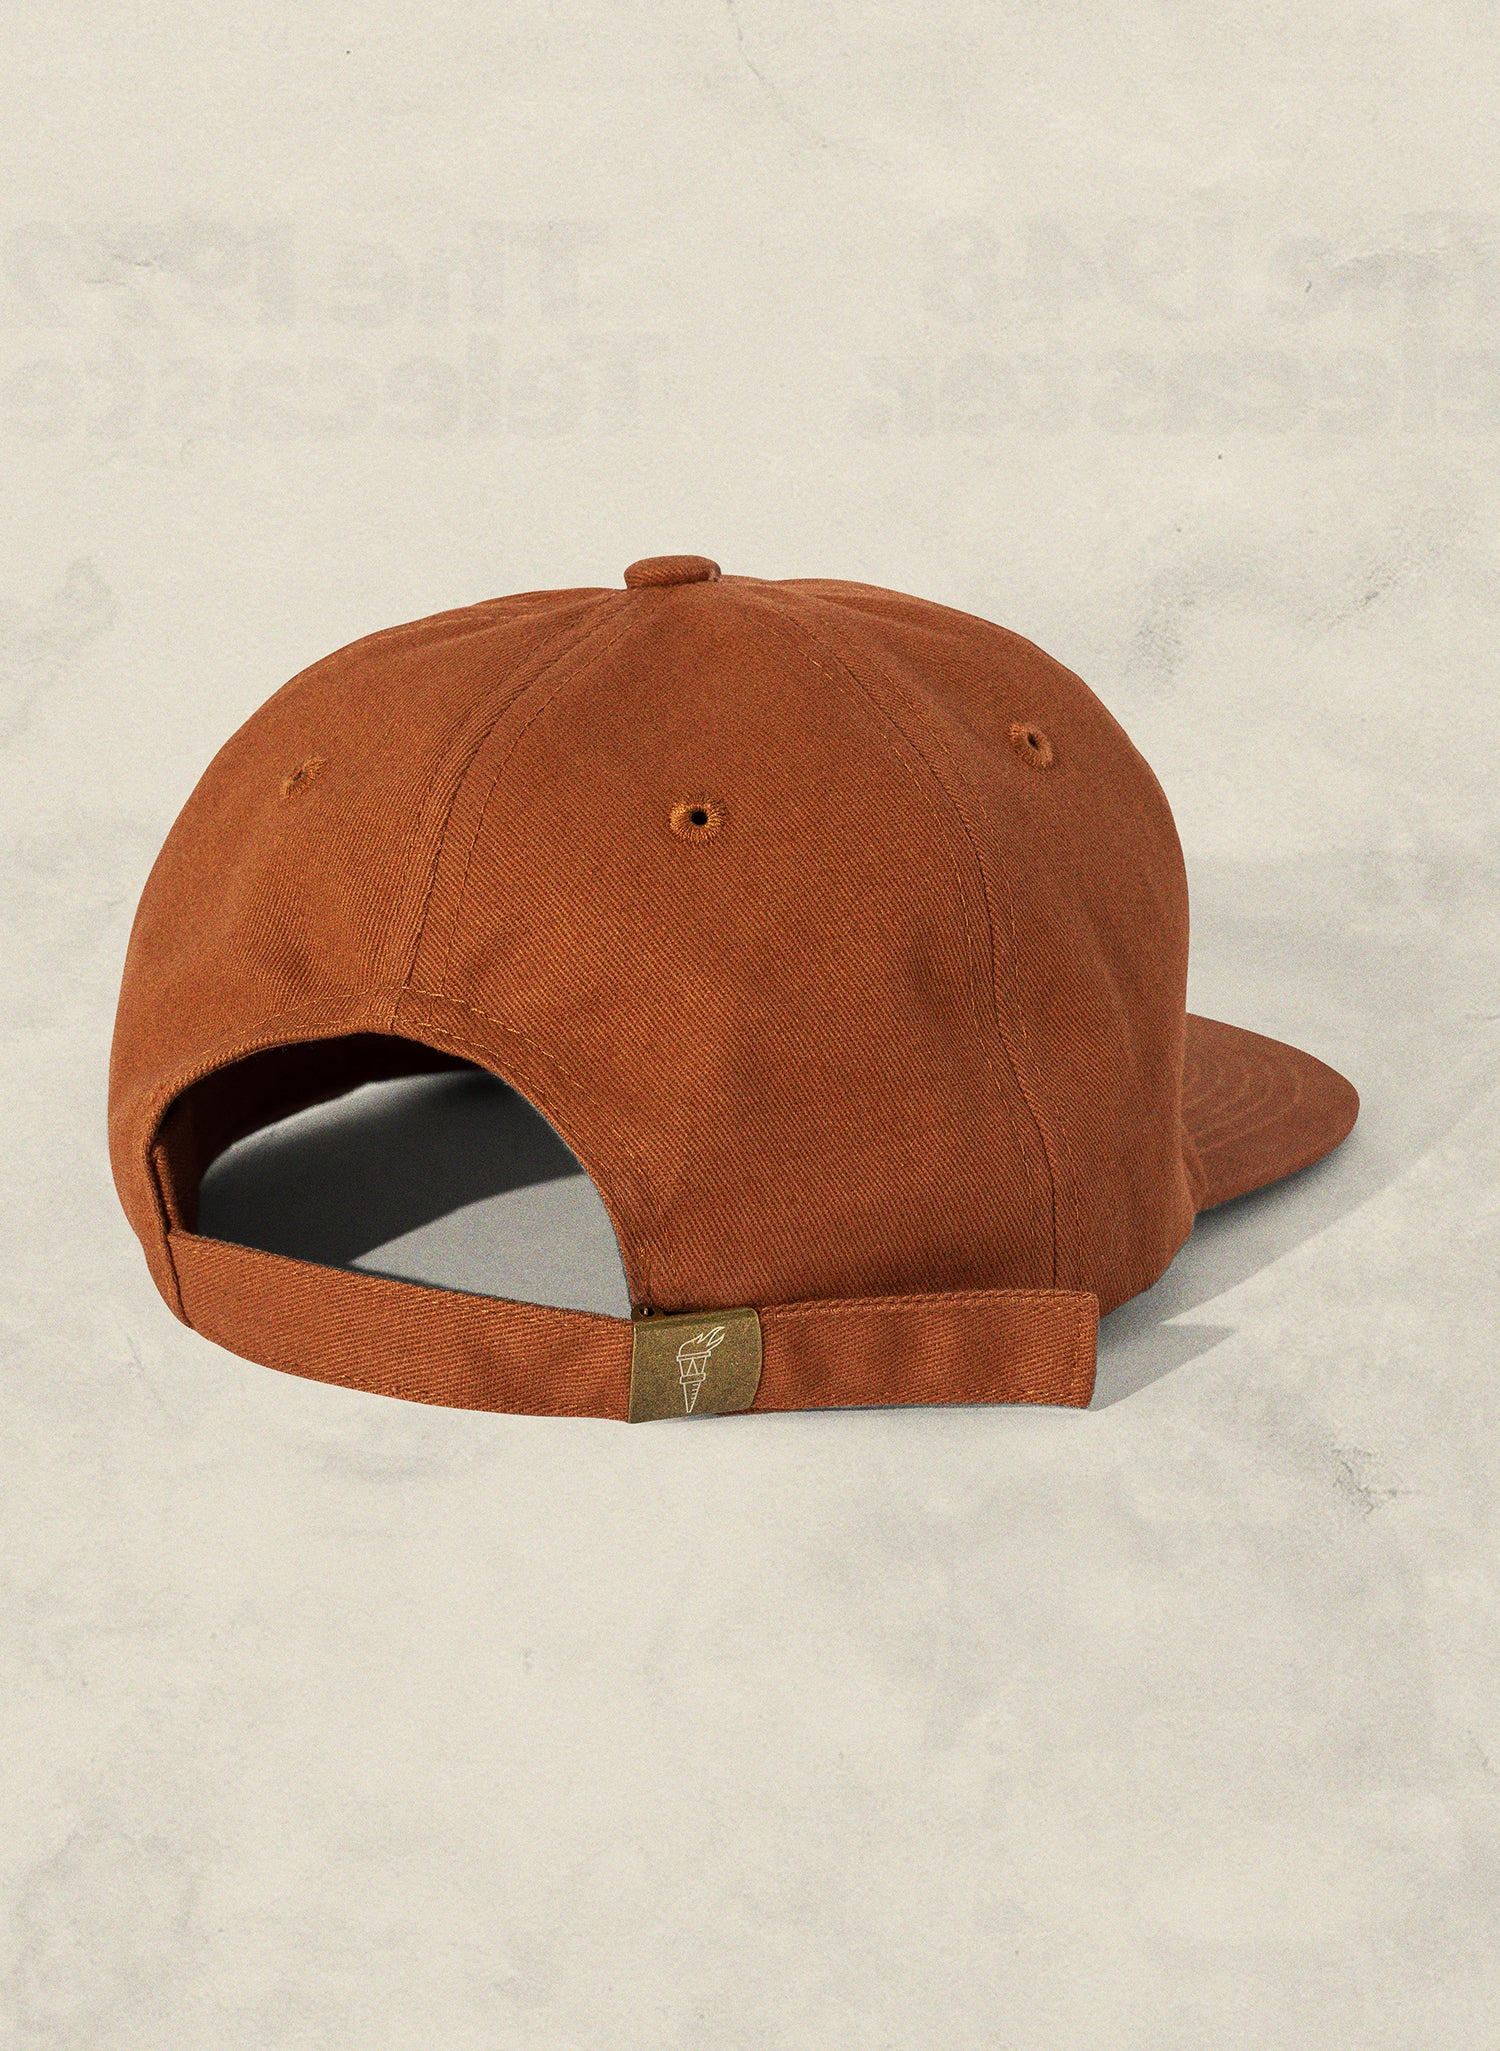 Grown in California Rust Field Trip Unstructured 6 Panel Workwear Strapback Hat Lifestyle Retro Vintage 70s